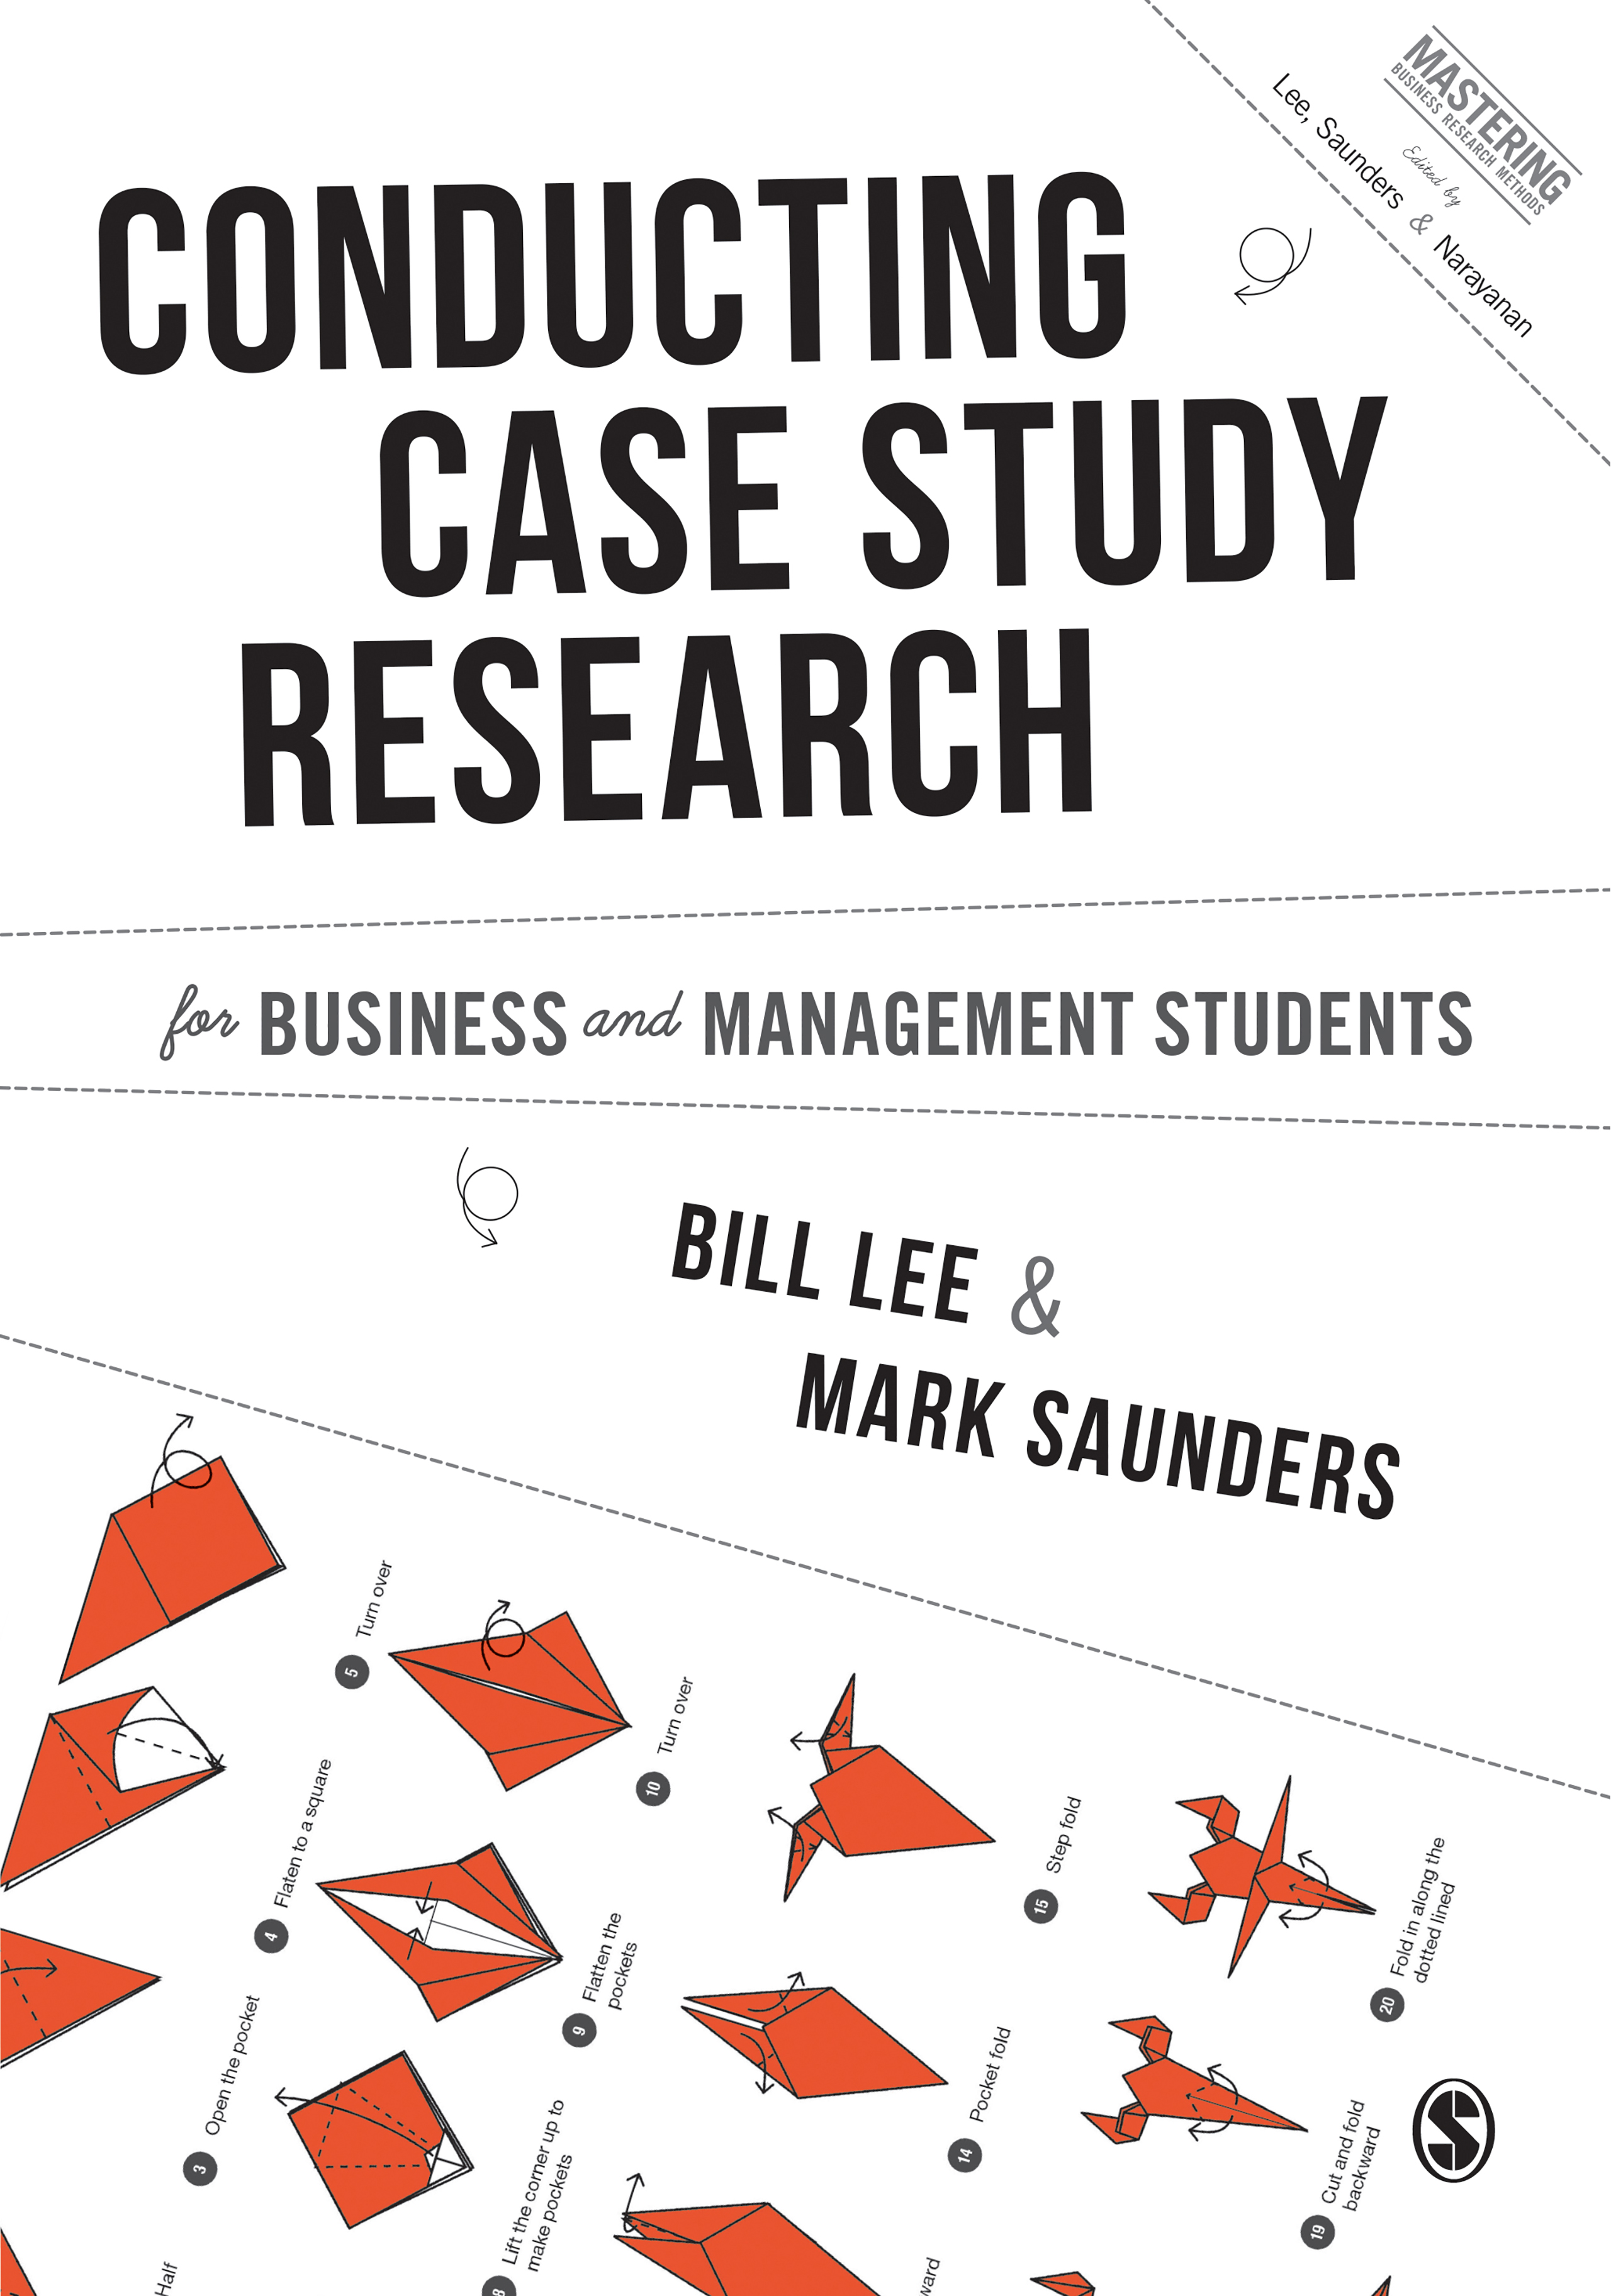 Download Ebook Conducting Case Study Research for Business and Management Students by Bill Lee Pdf